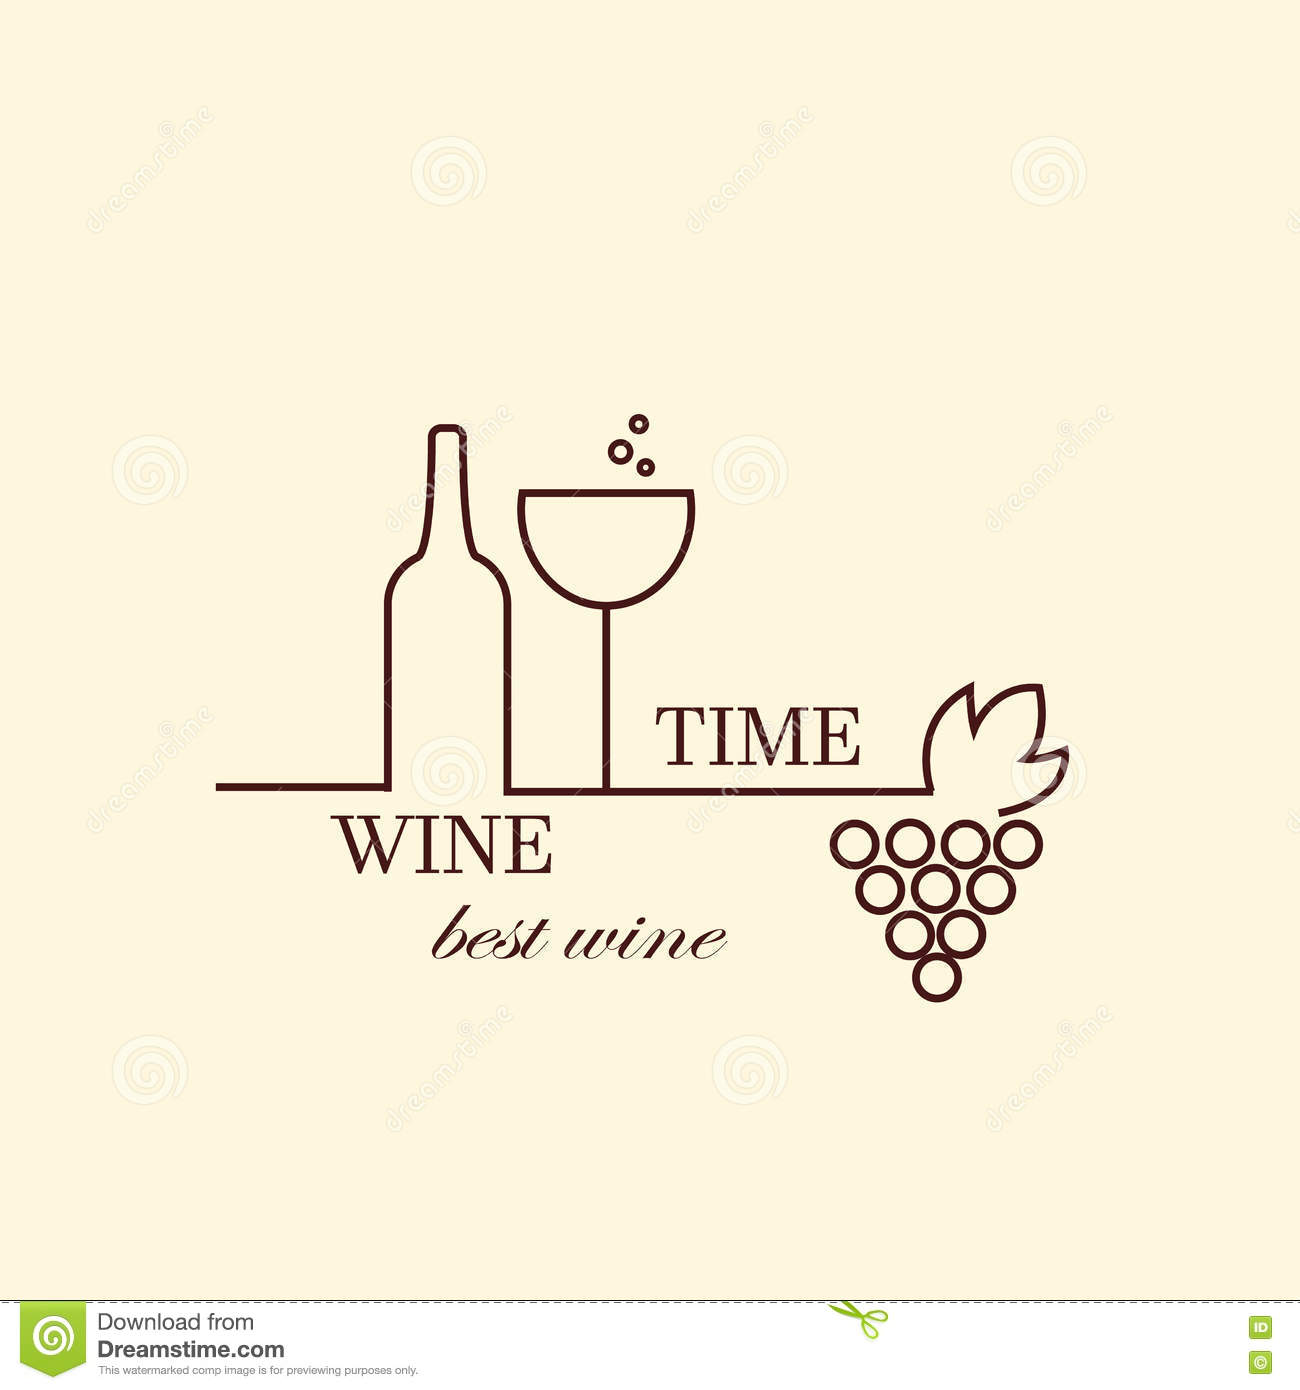 vector grape vine and wine bottles logo design template